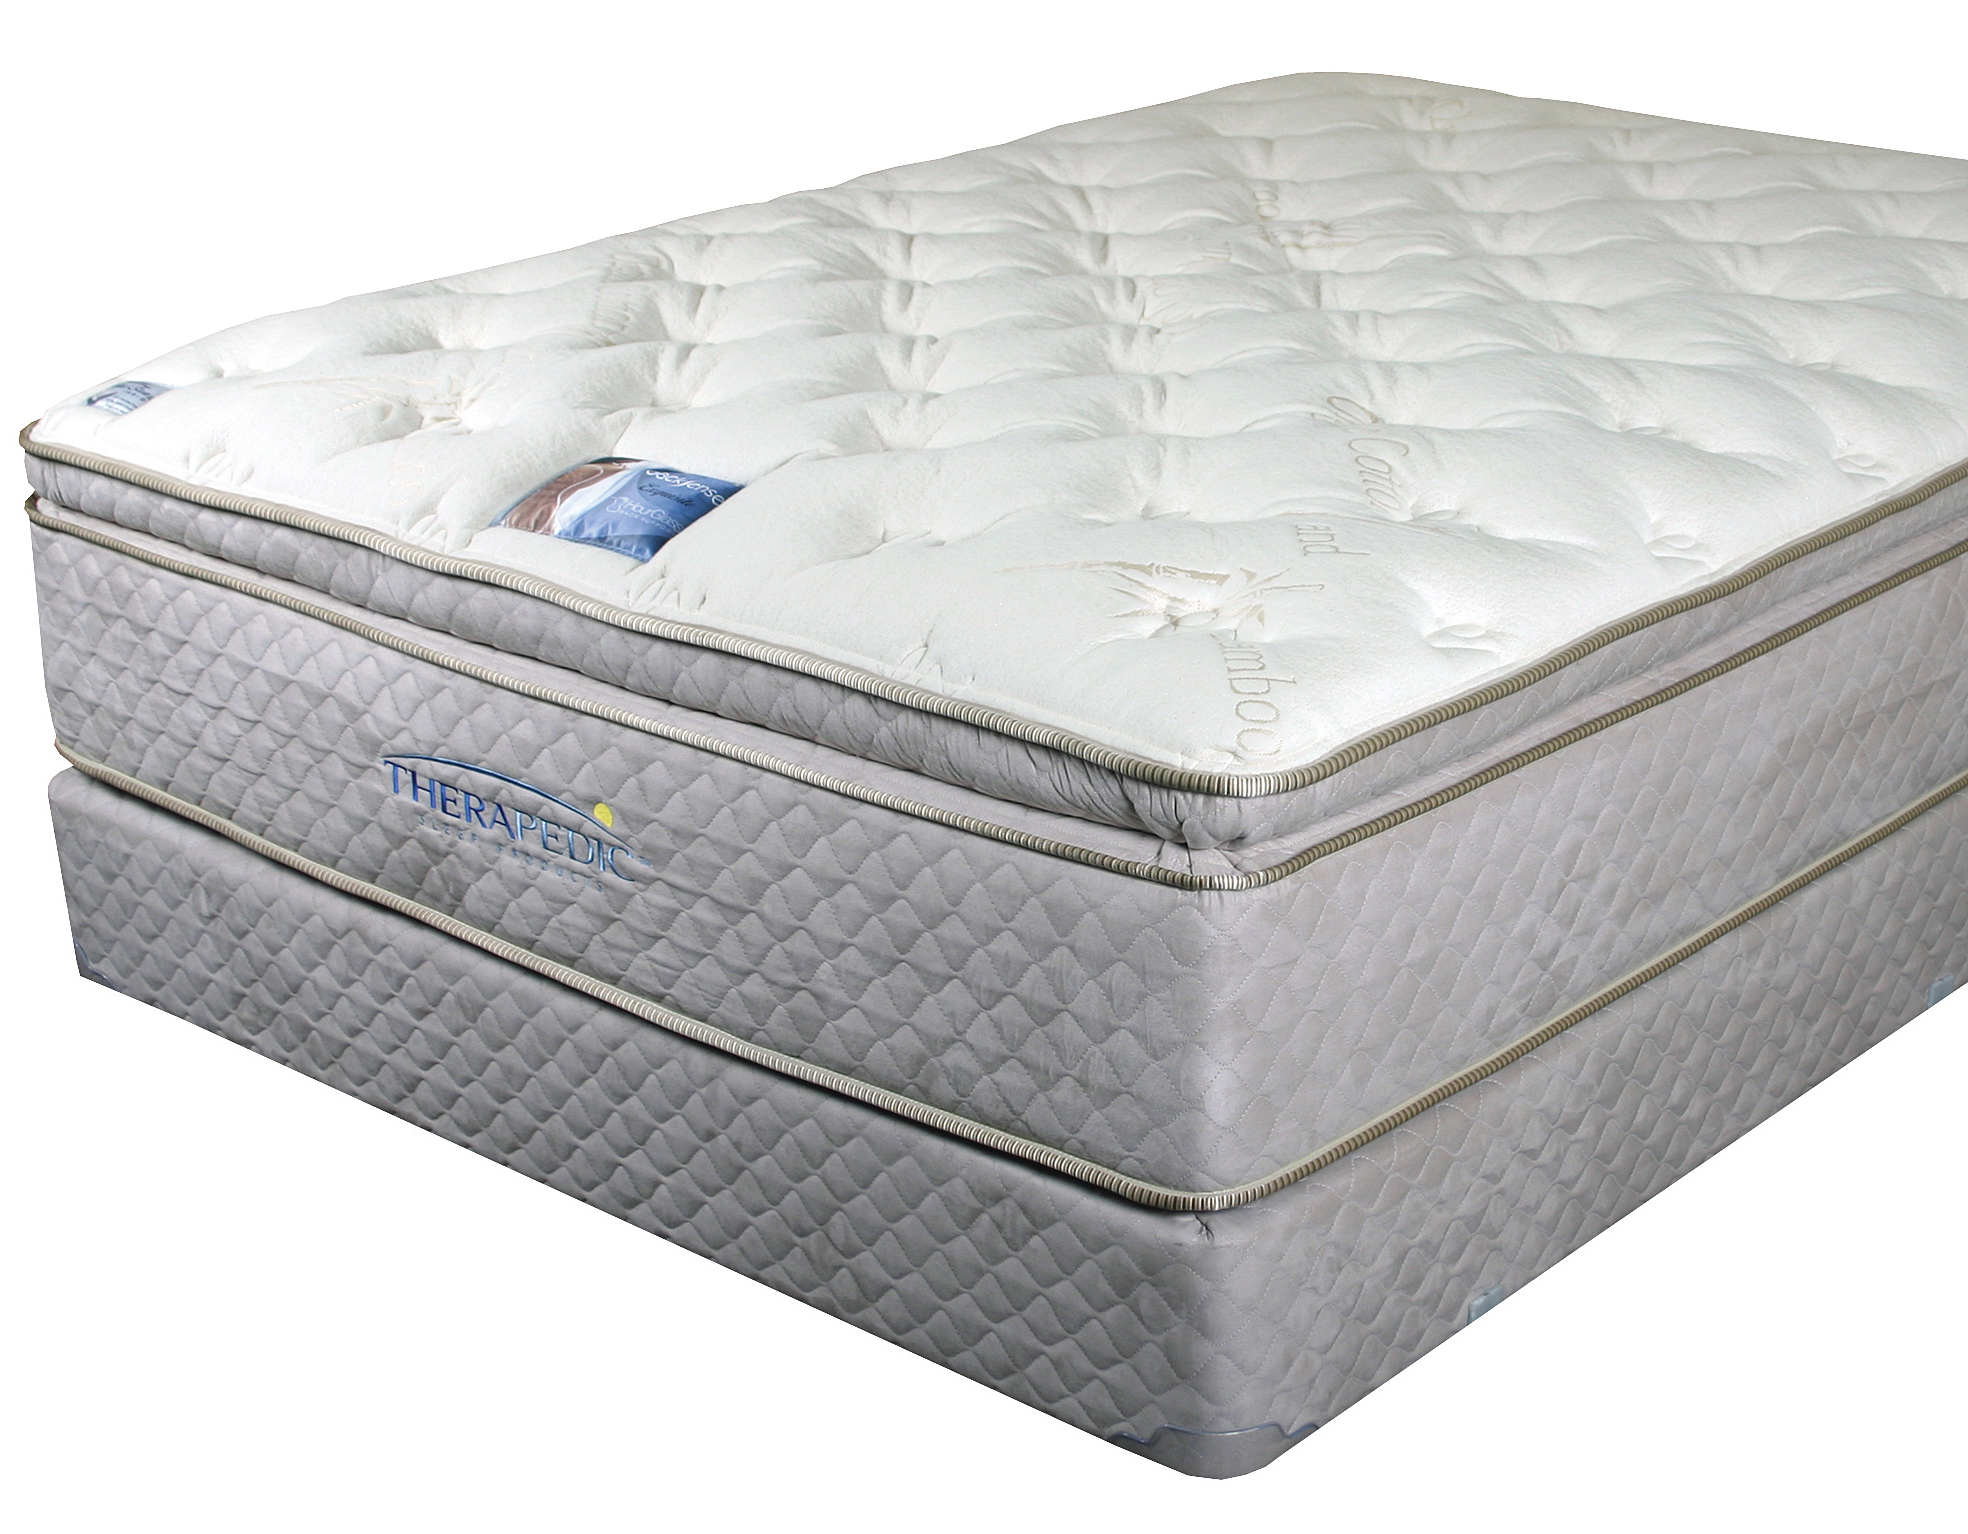 Serta Pillow Top Mattress Full Size